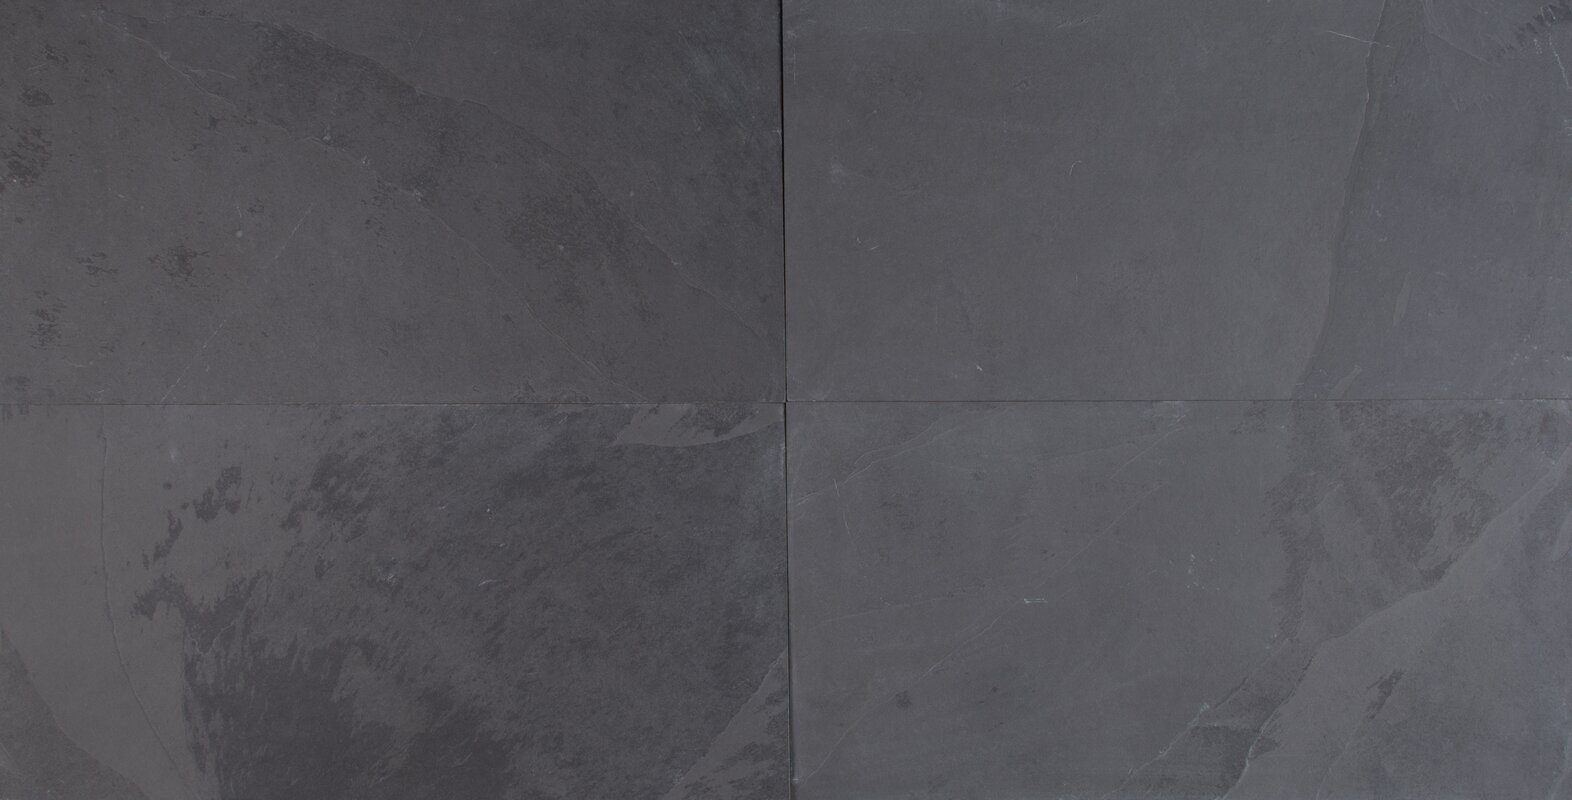 Msi montauk 12 x 24 slate field tile in black reviews wayfair montauk 12 x 24 slate field dailygadgetfo Choice Image